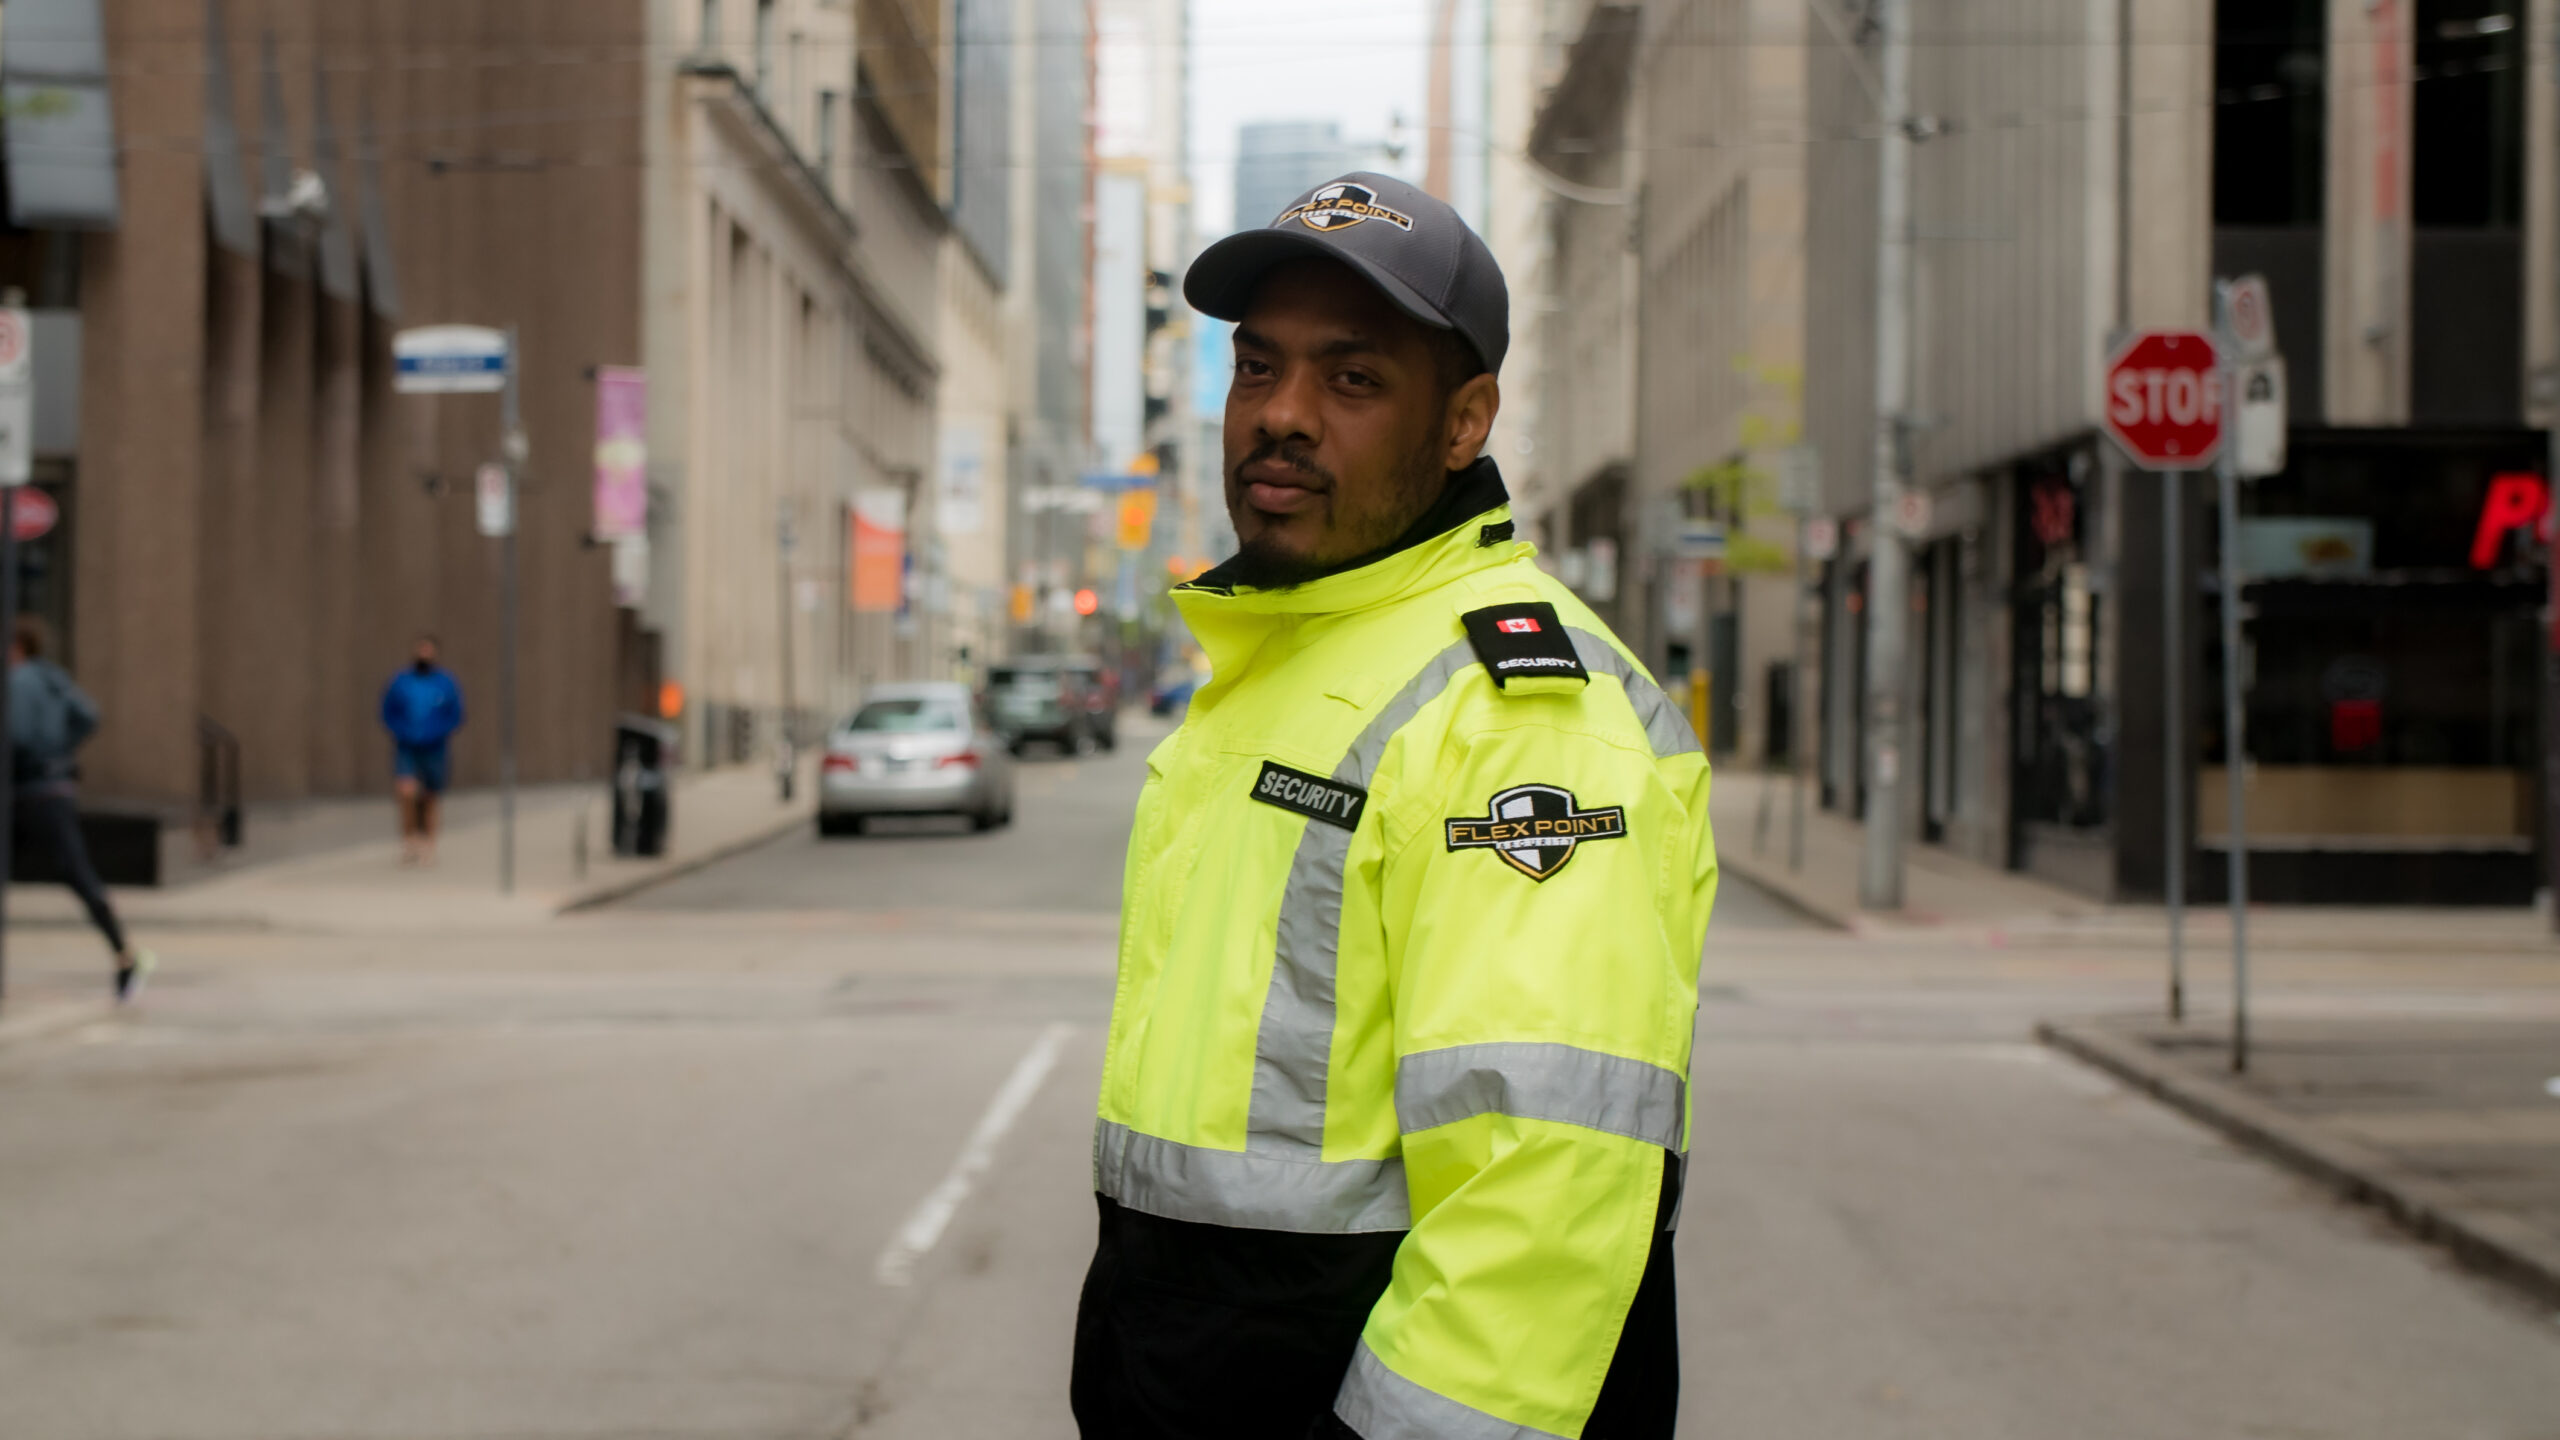 Male Flex Point Security guard providing traffic control services and standing on the street in Downtown, Toronto